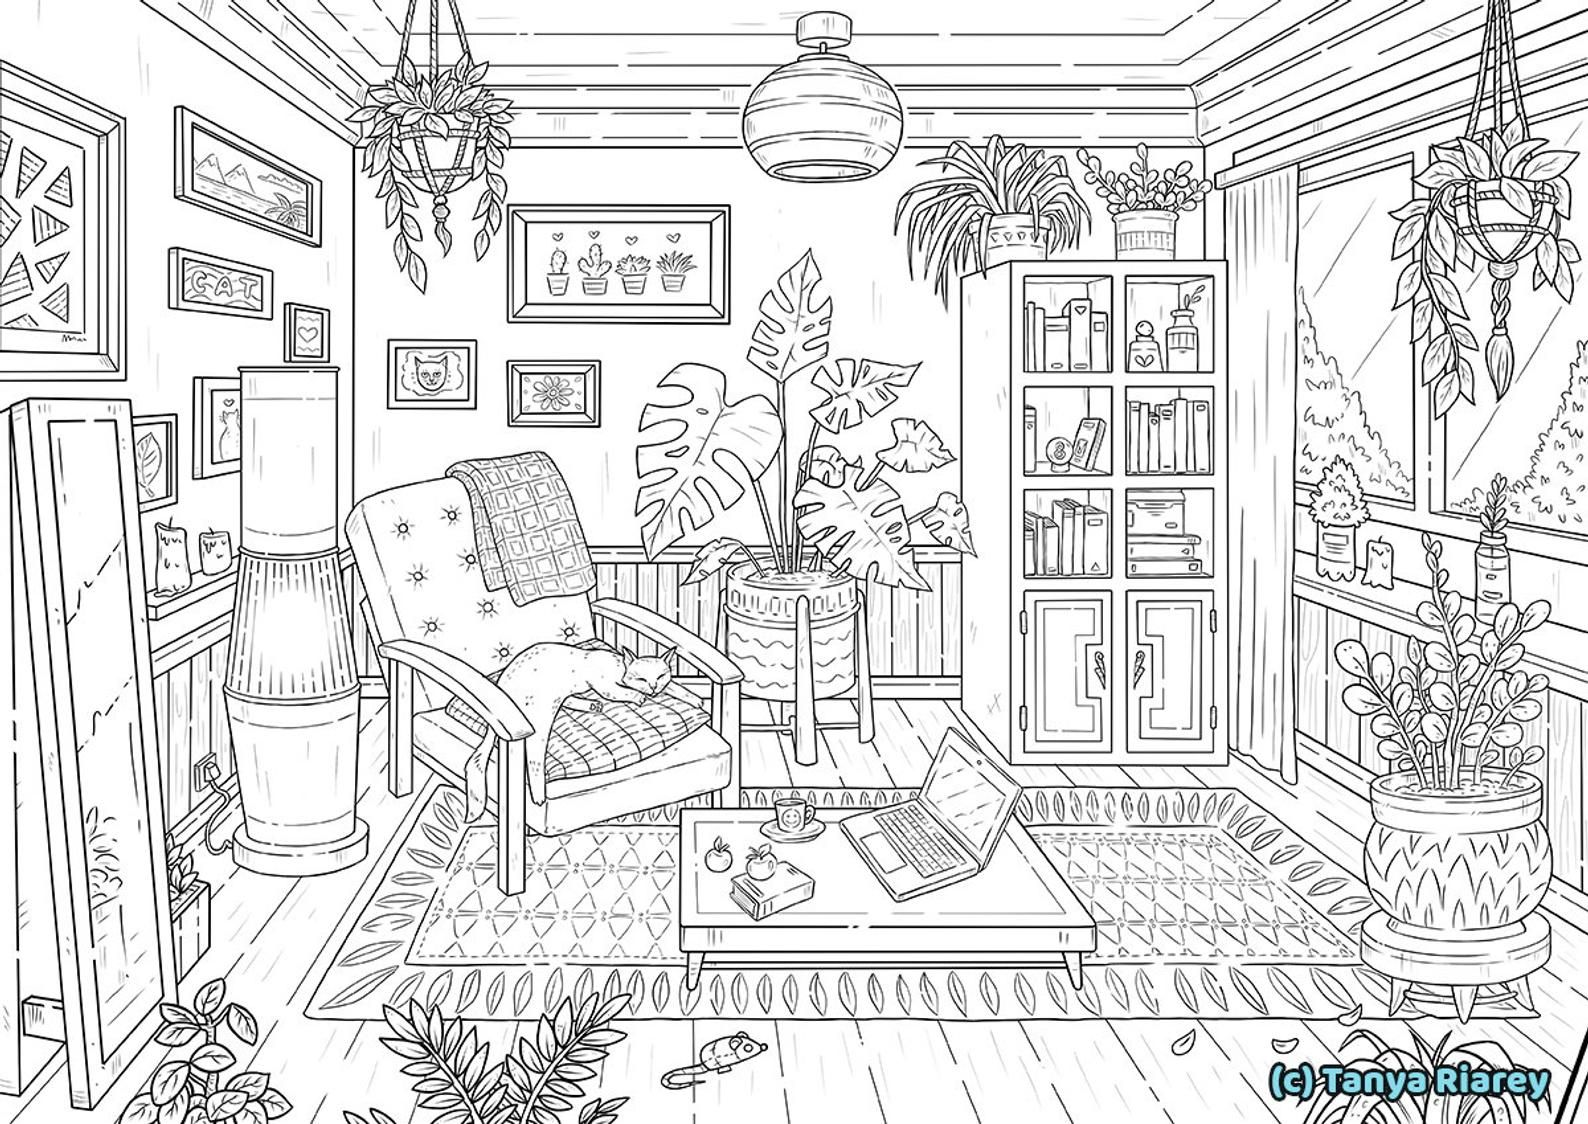 33+ Detailed coloring pages ideas